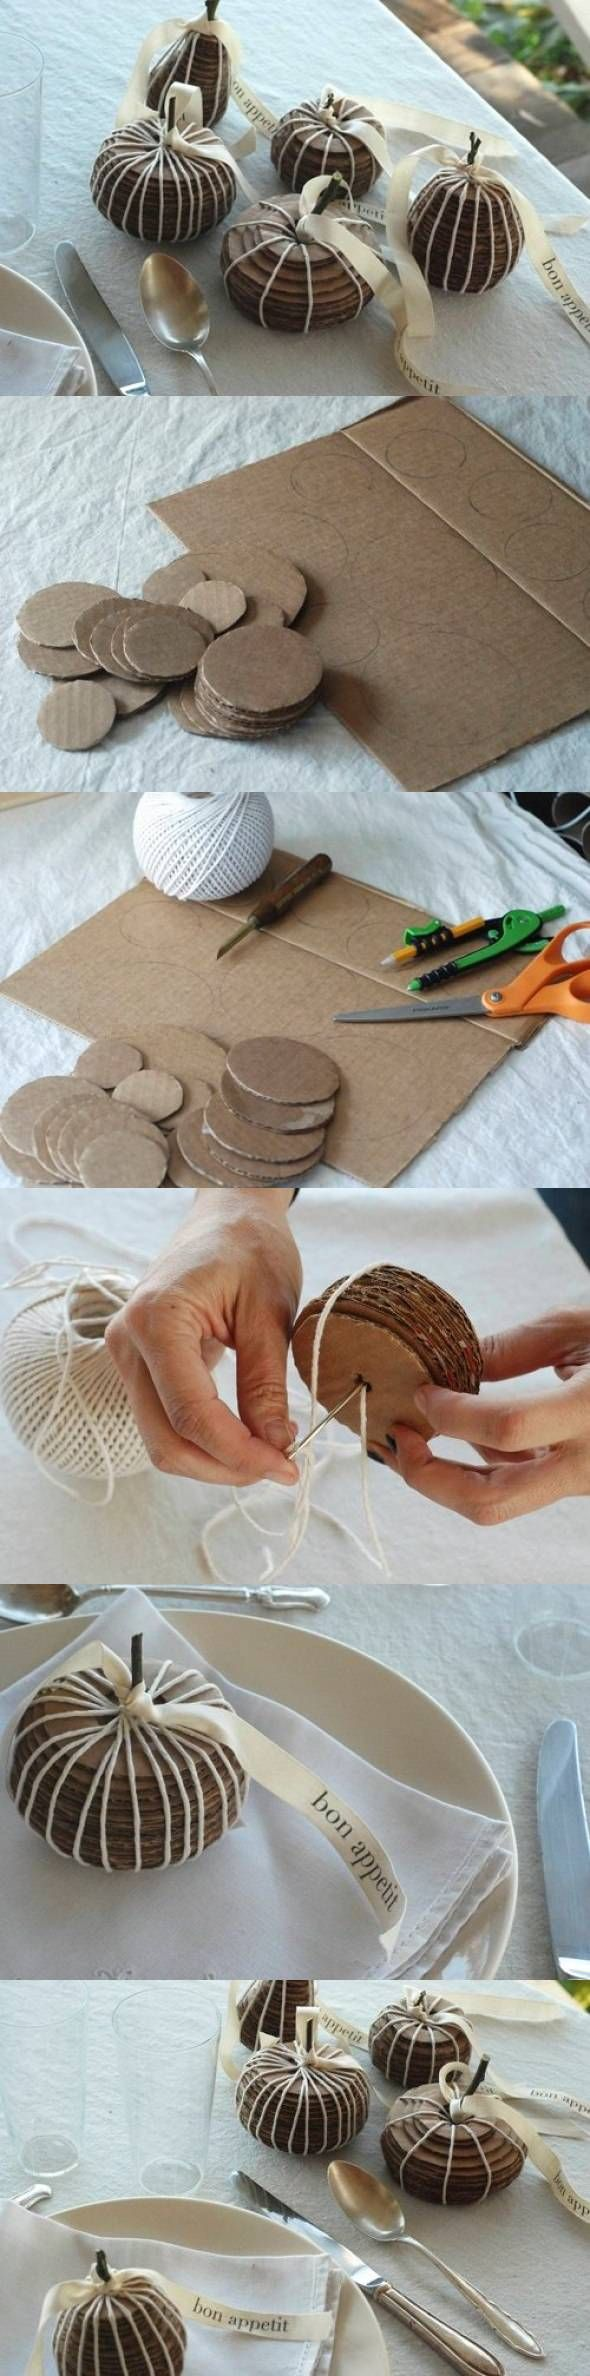 DIY Fruit of Cardboards